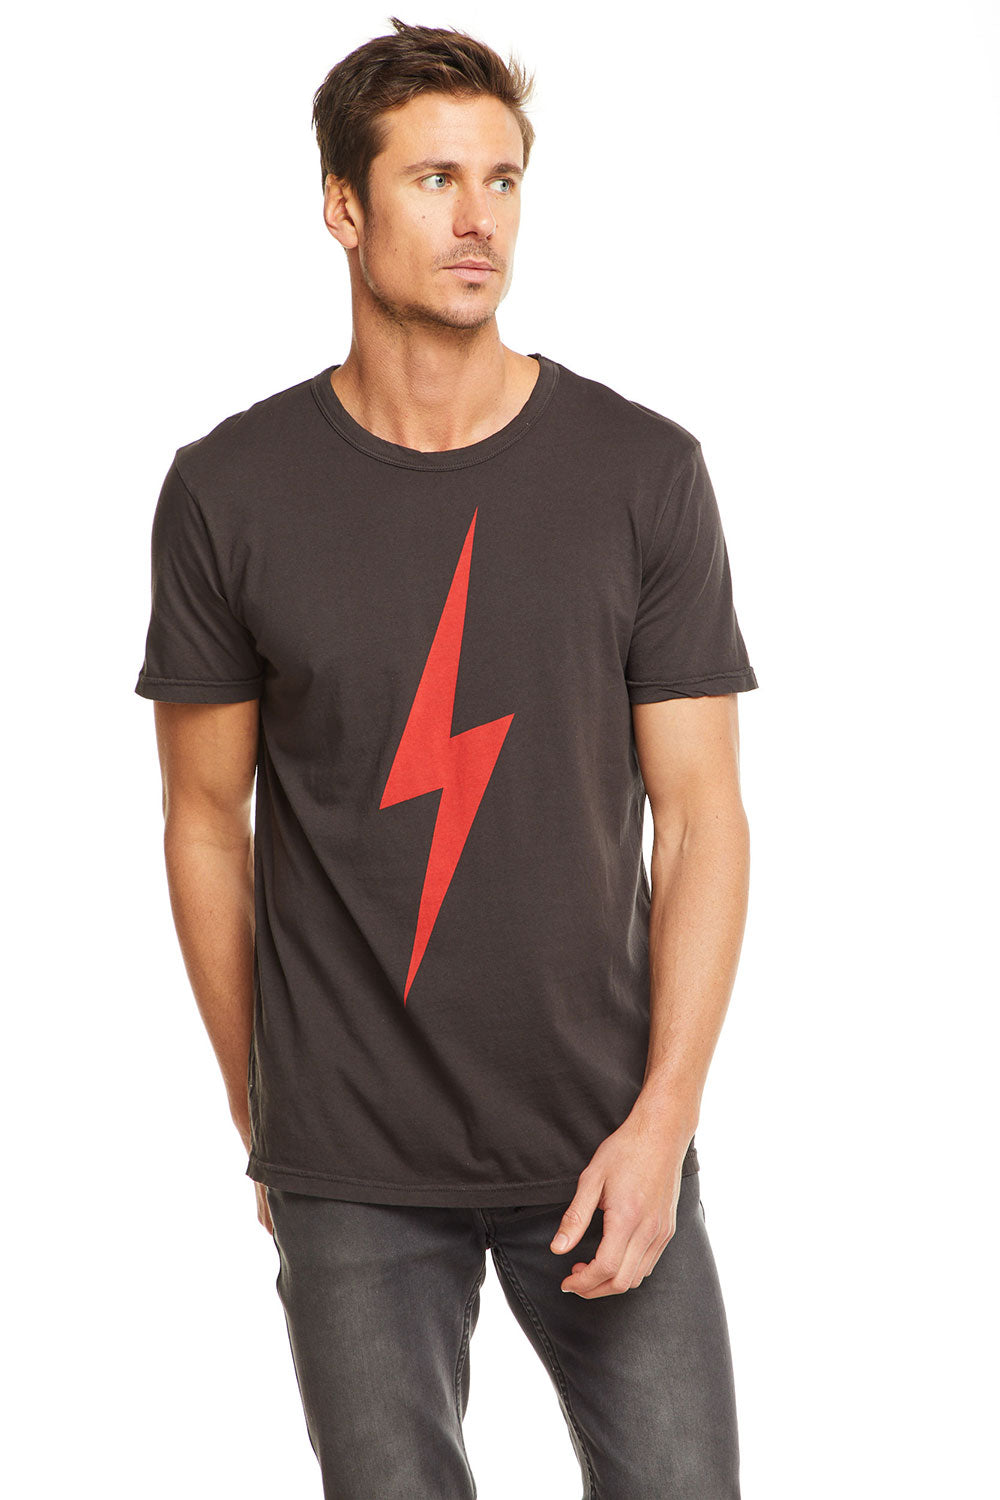 Red Lightning Bolt, MENS, chaserbrand.com,chaser clothing,chaser apparel,chaser los angeles